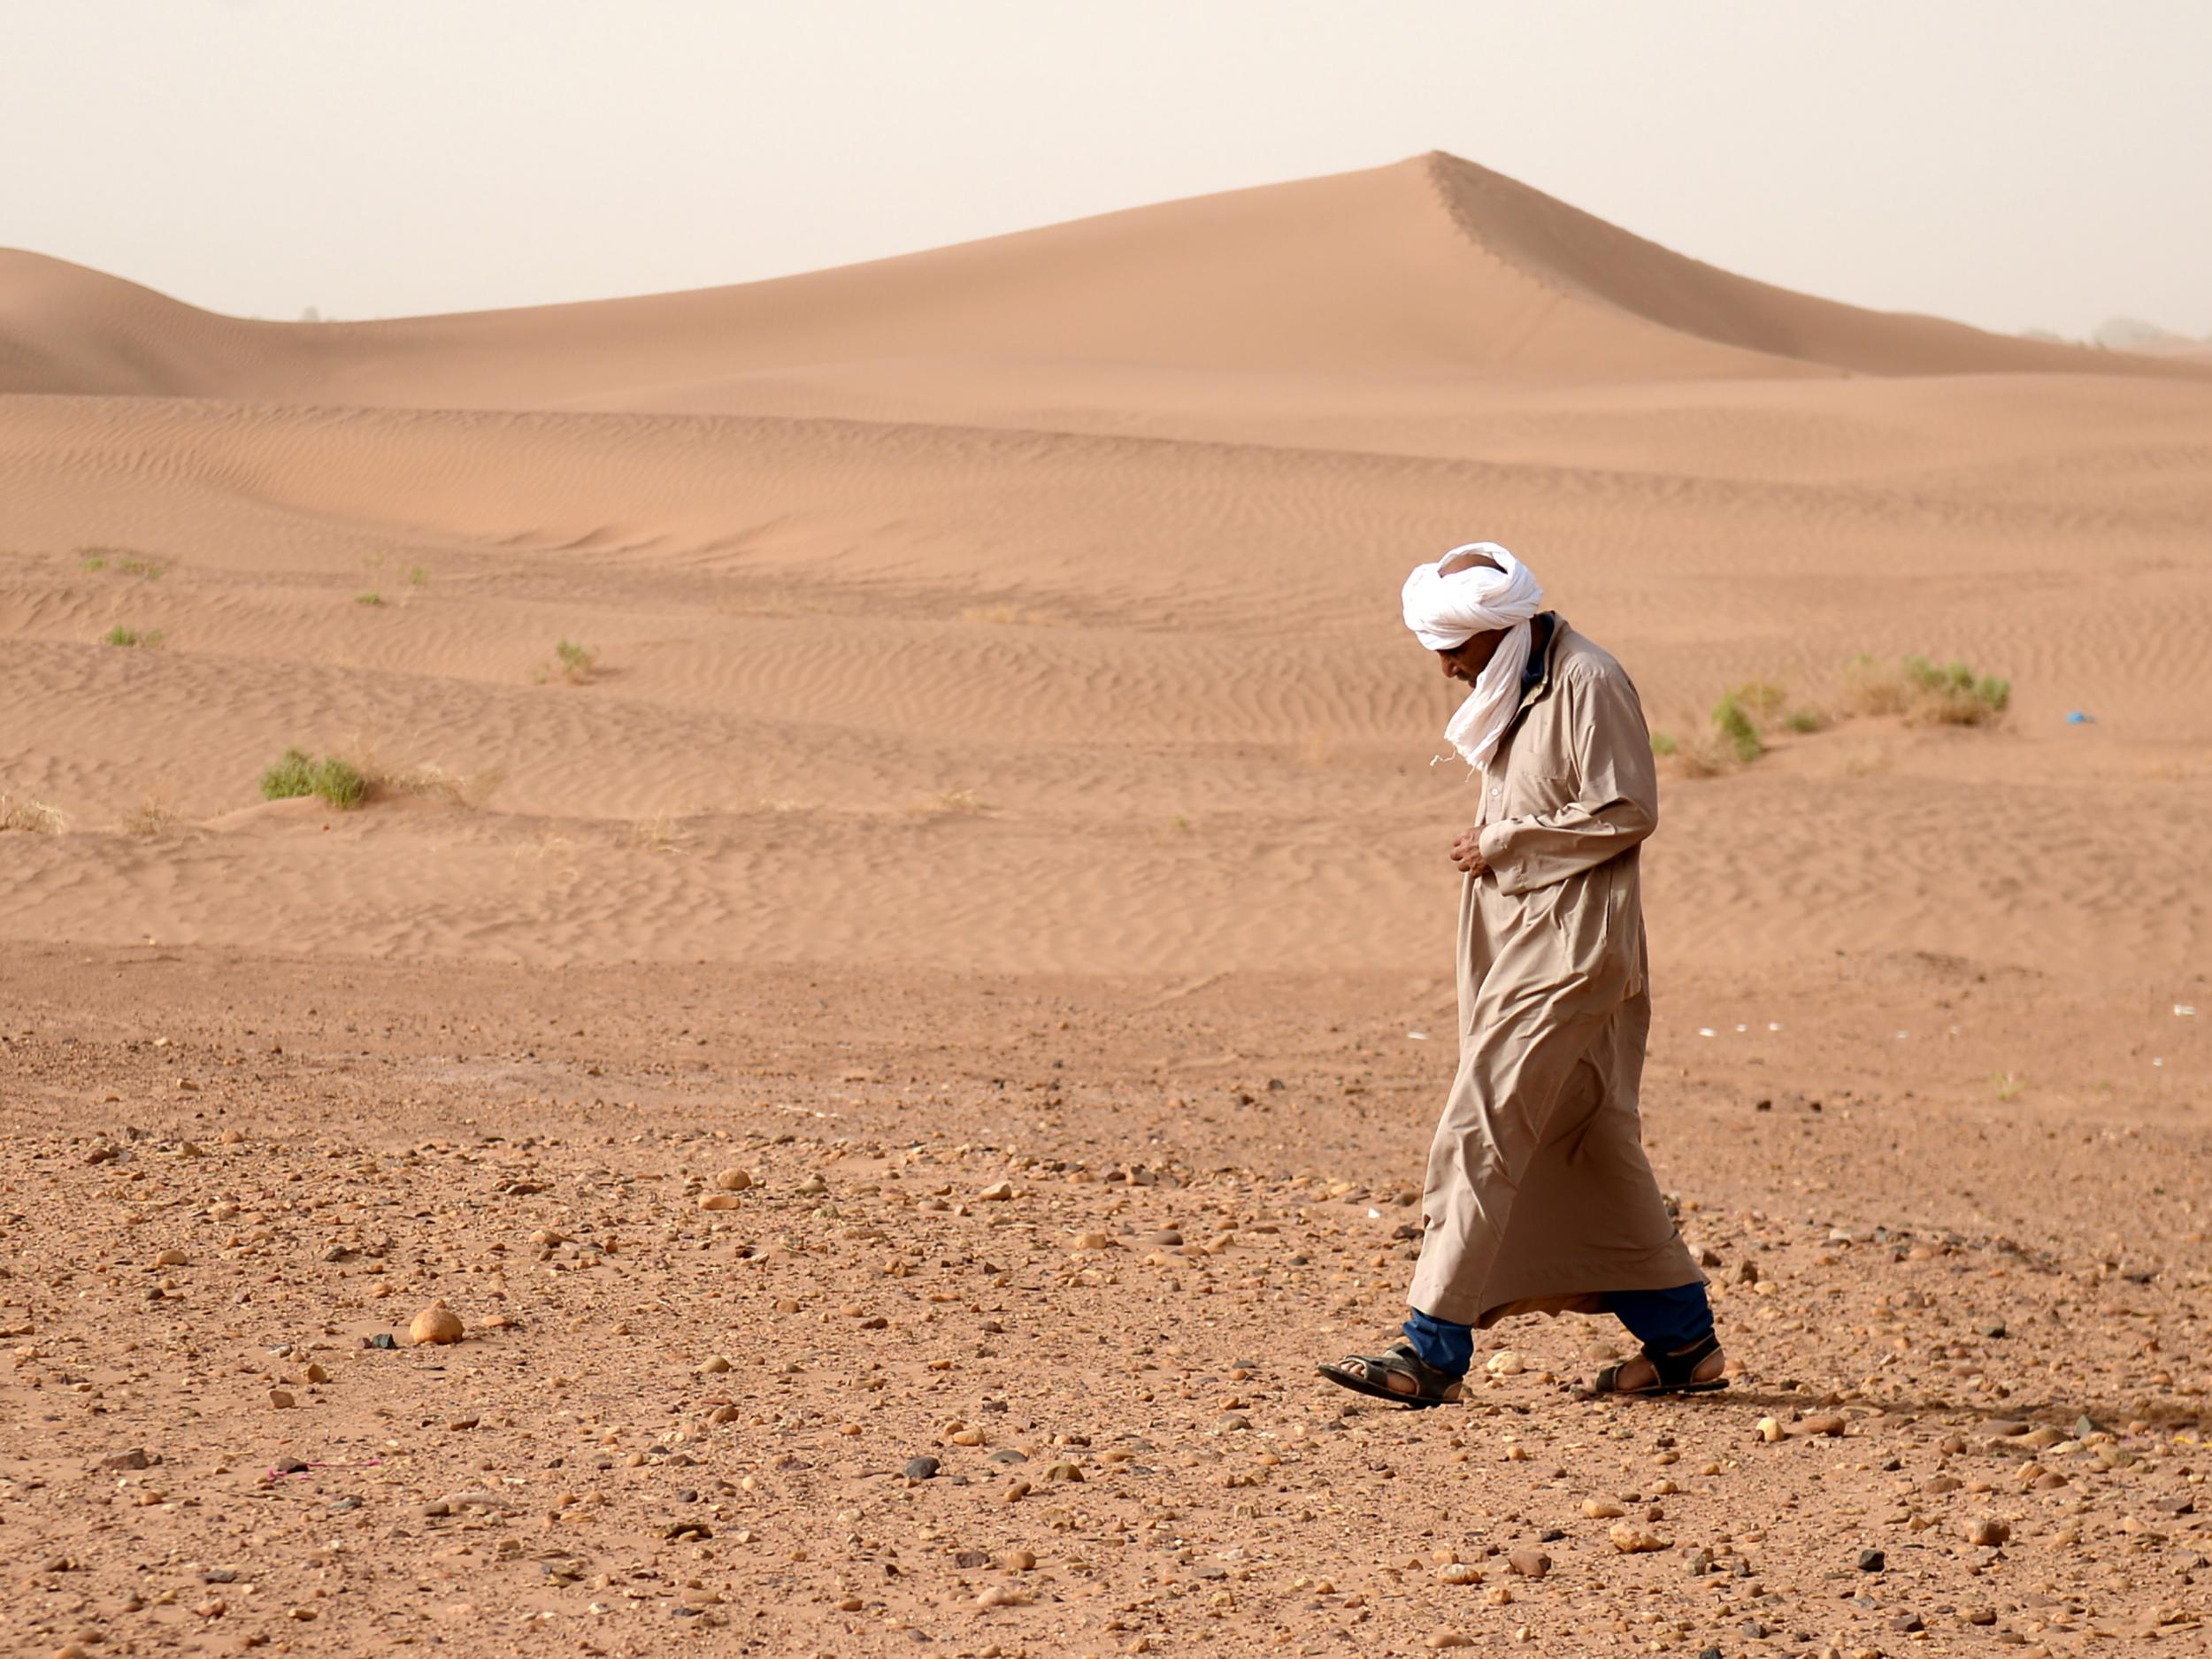 World's largest desert has grown even larger due to climate change | The  Independent